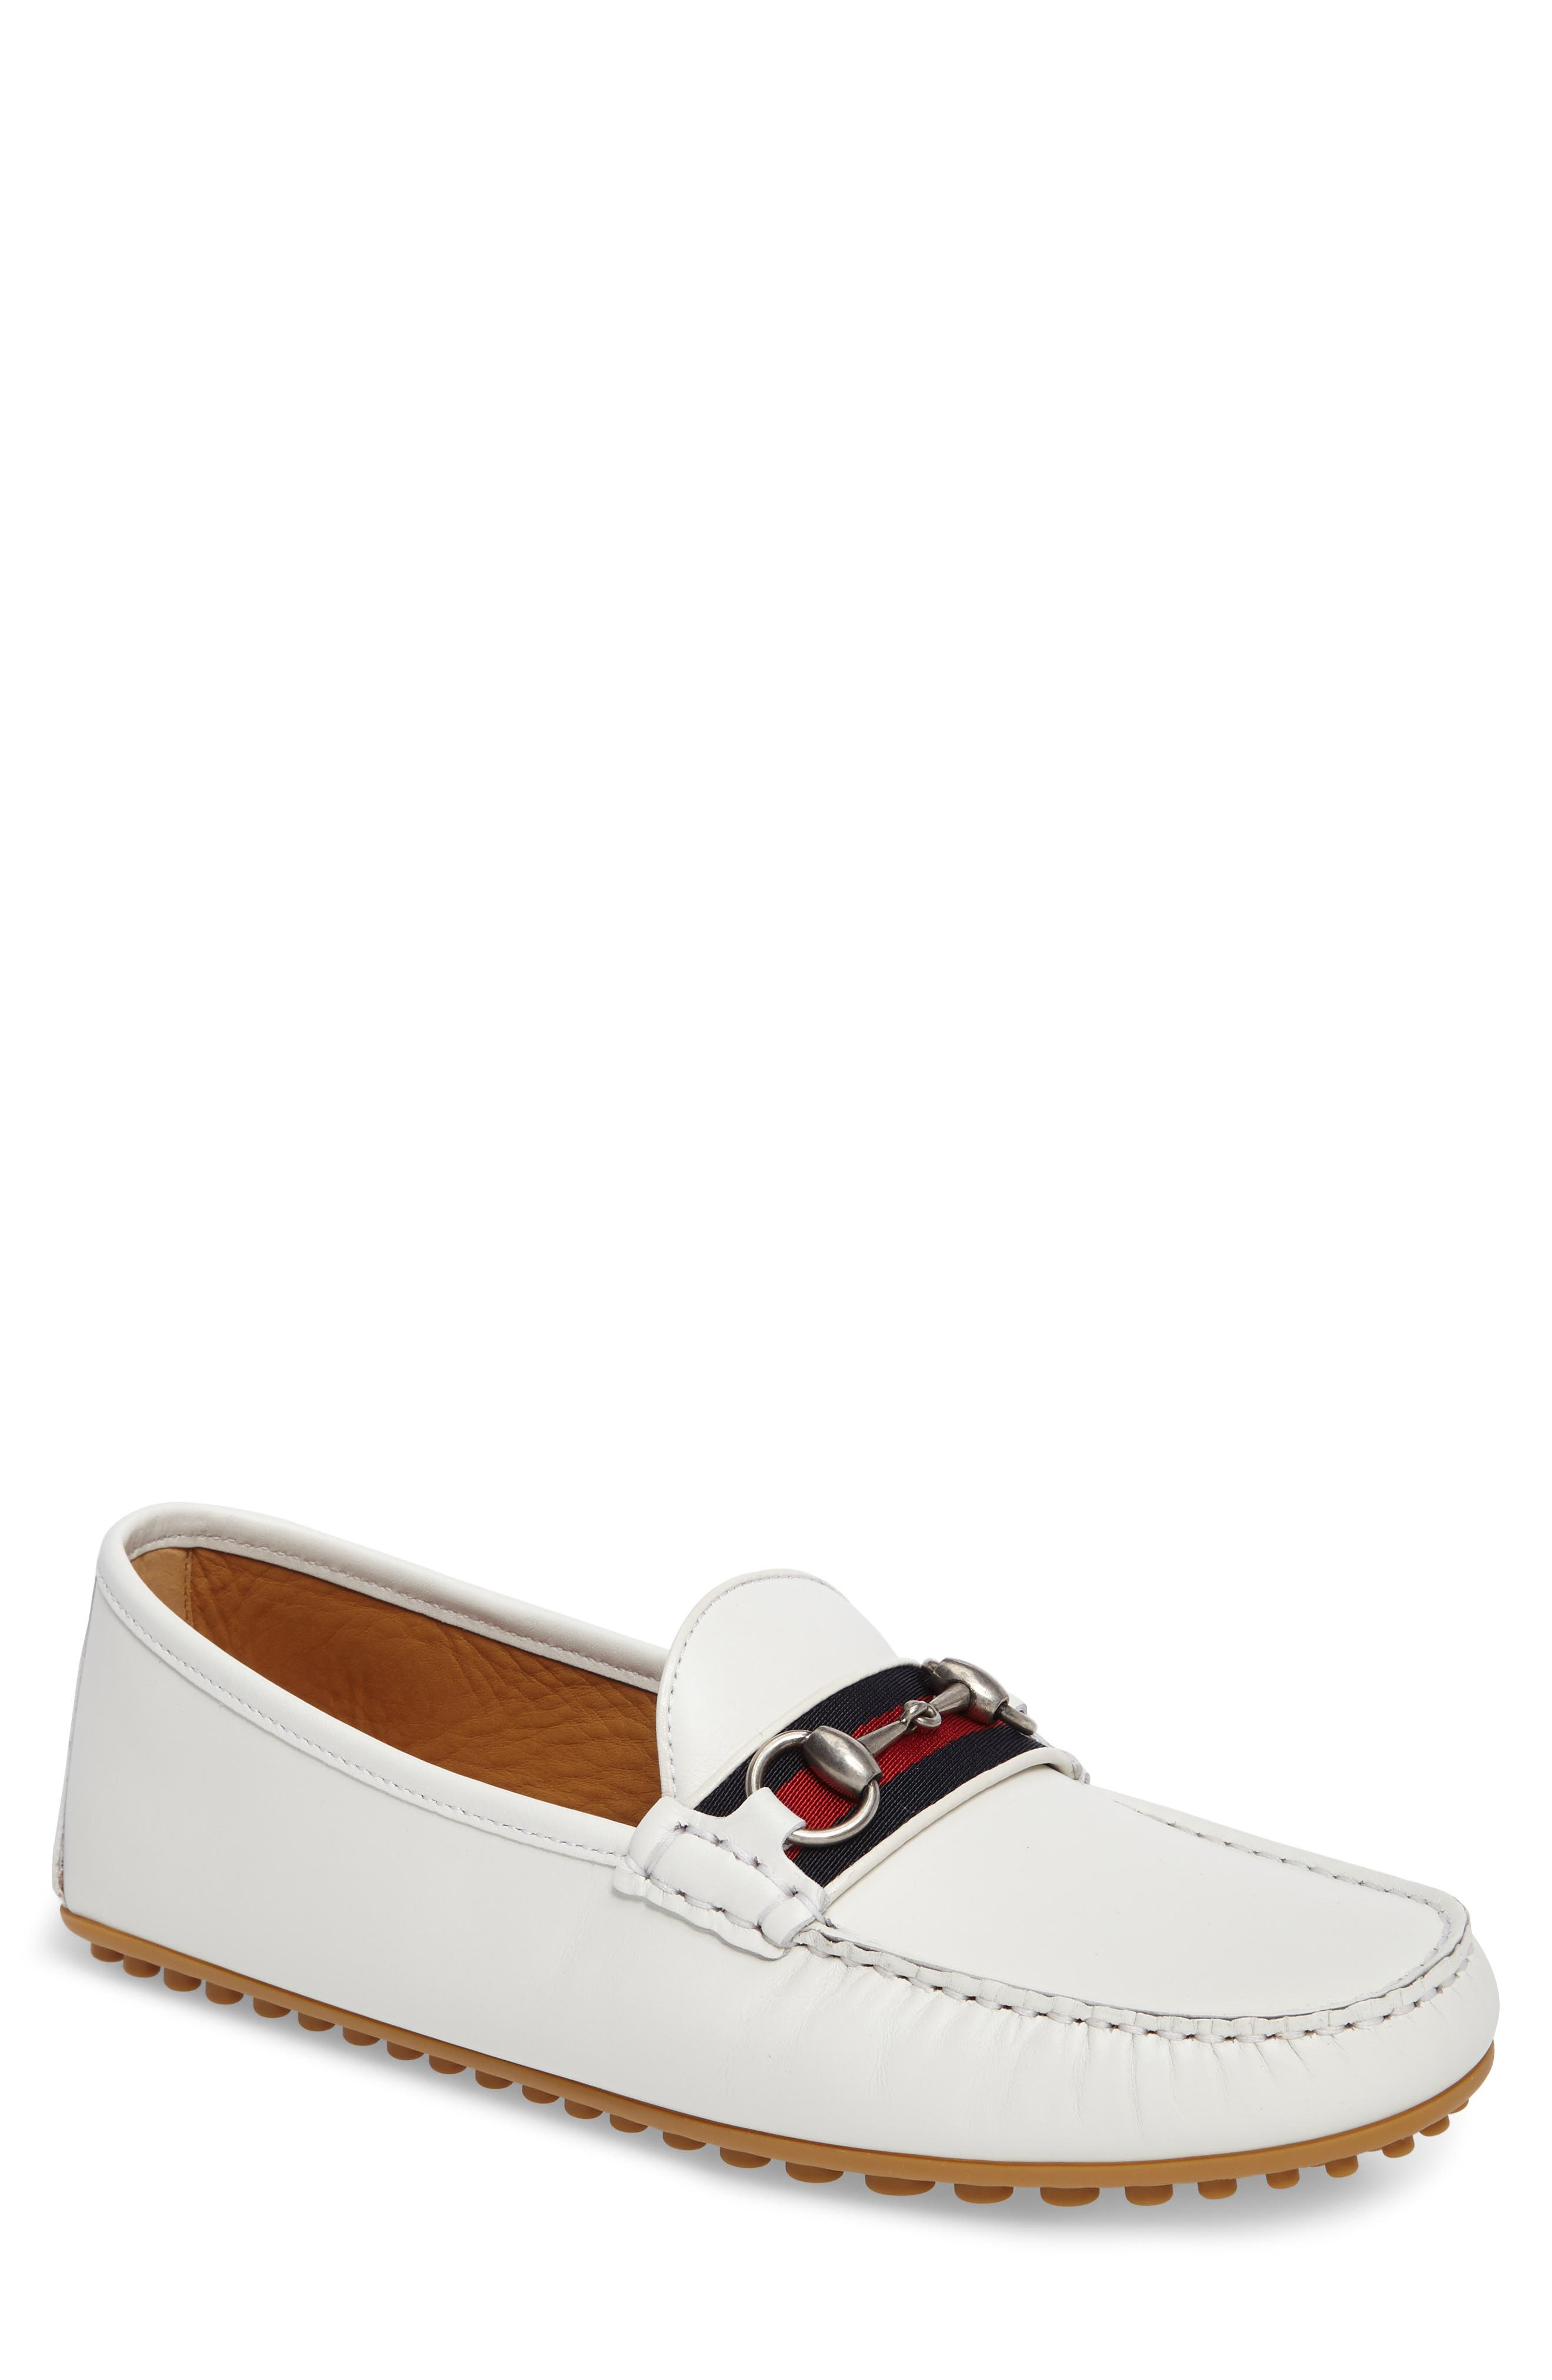 Kanye Bit Loafer,                         Main,                         color, White Leather